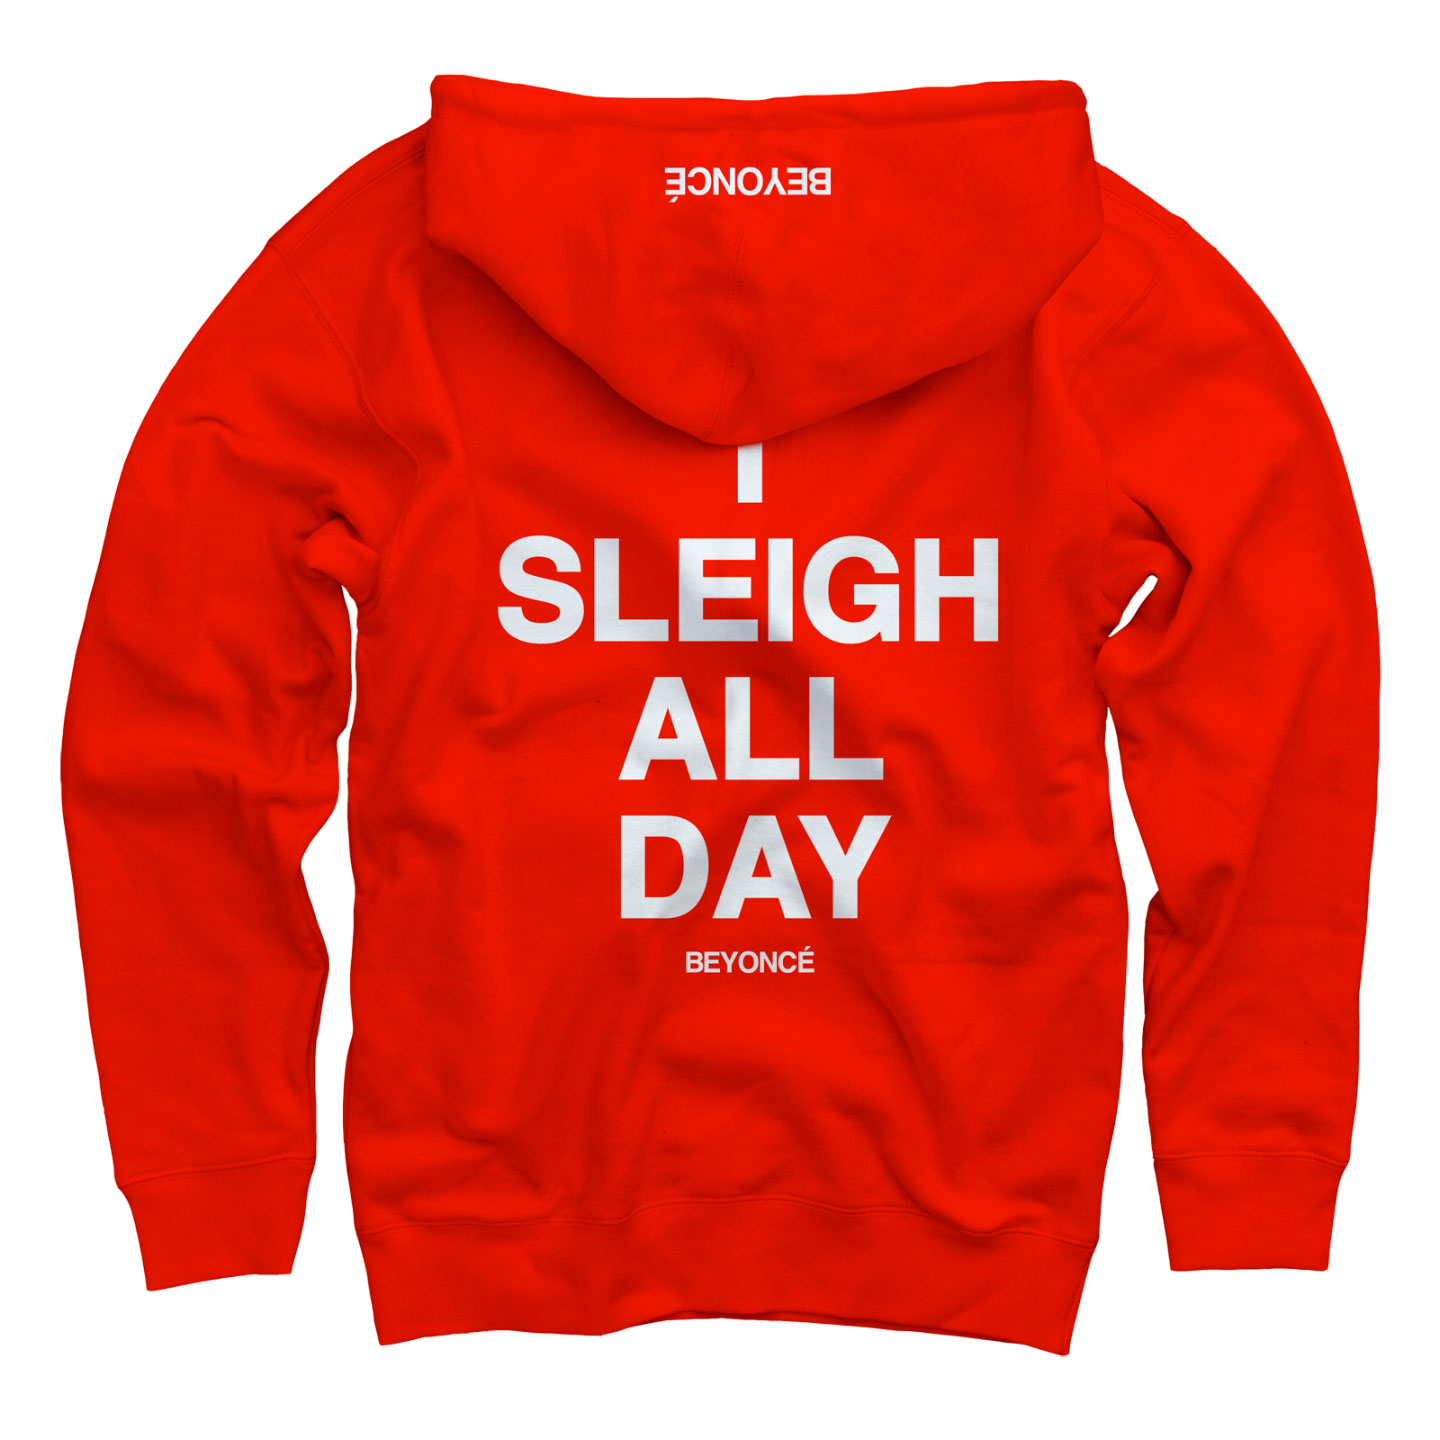 I sleigh all day Sweater by Beyoncé